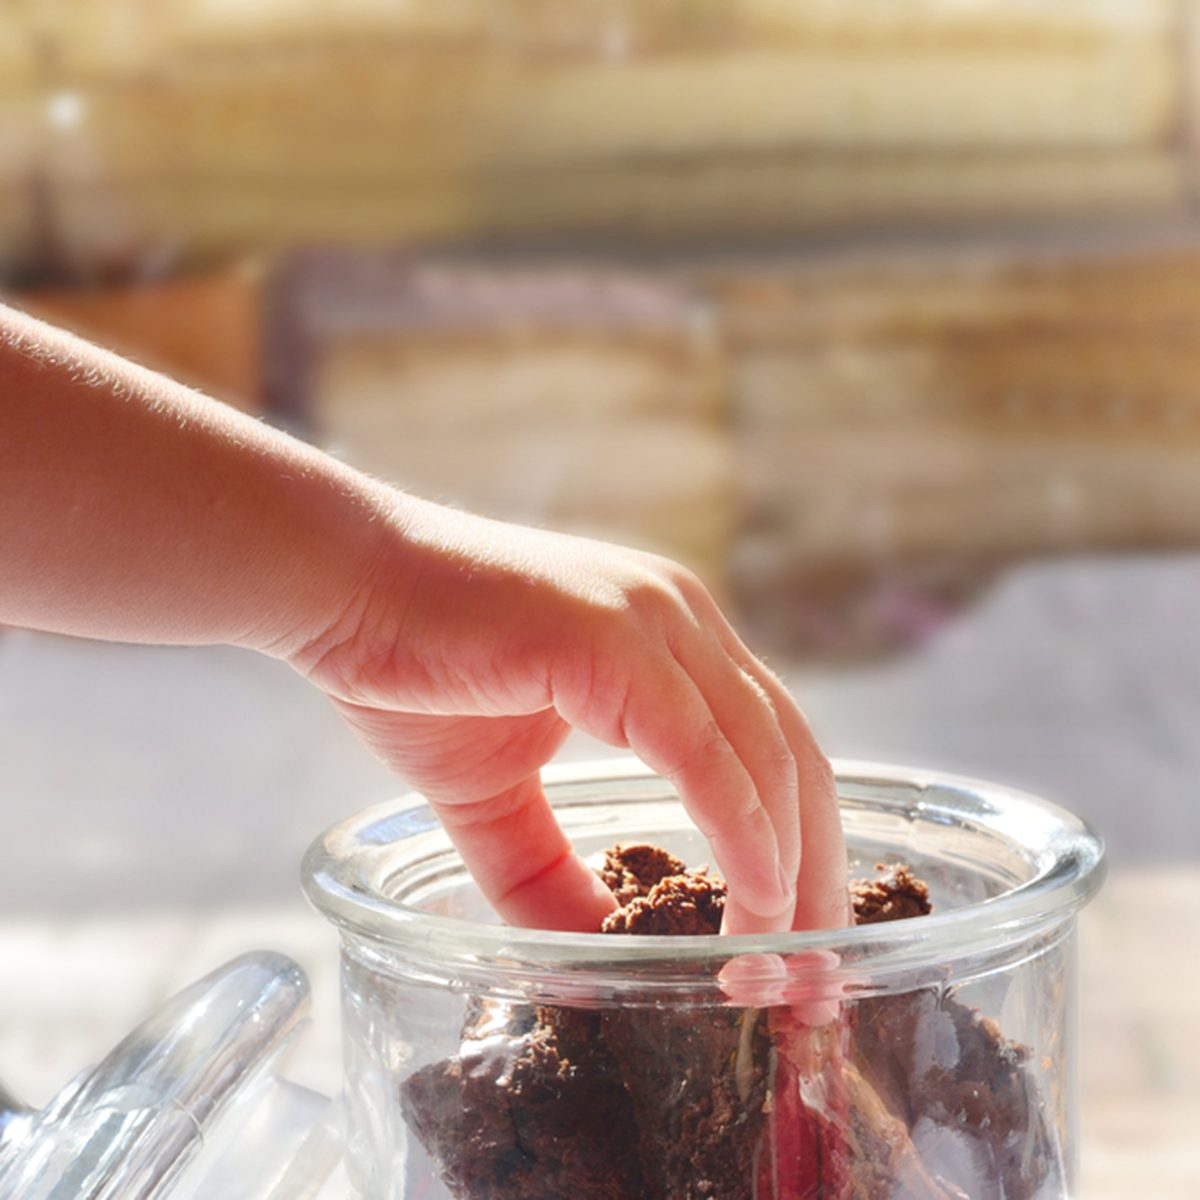 Child's hand reaching for a piece of chocolate brownie stored in a glass cookie jar.